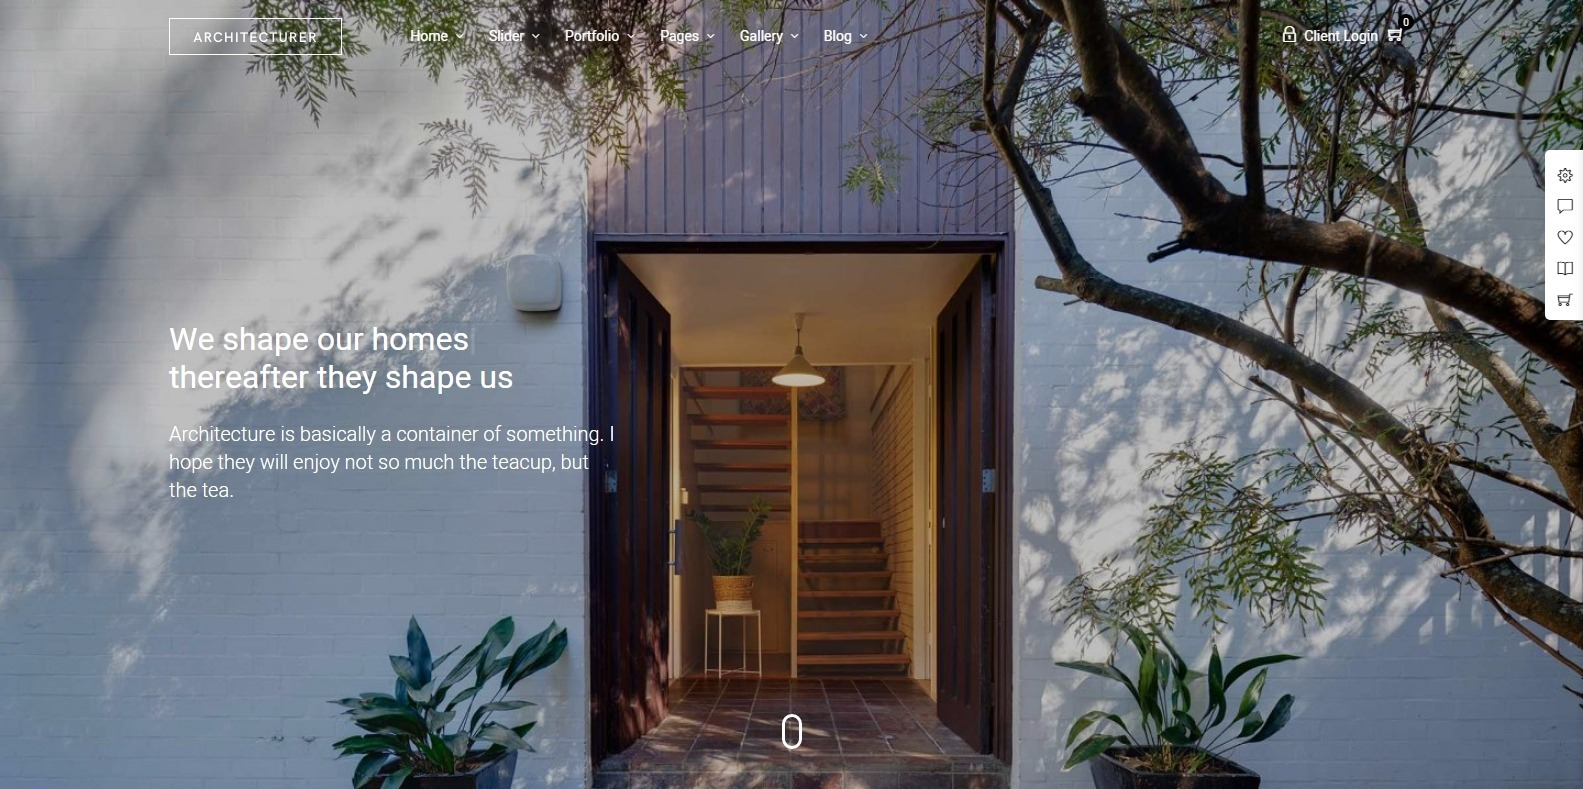 architecturer-home-staging-website-template